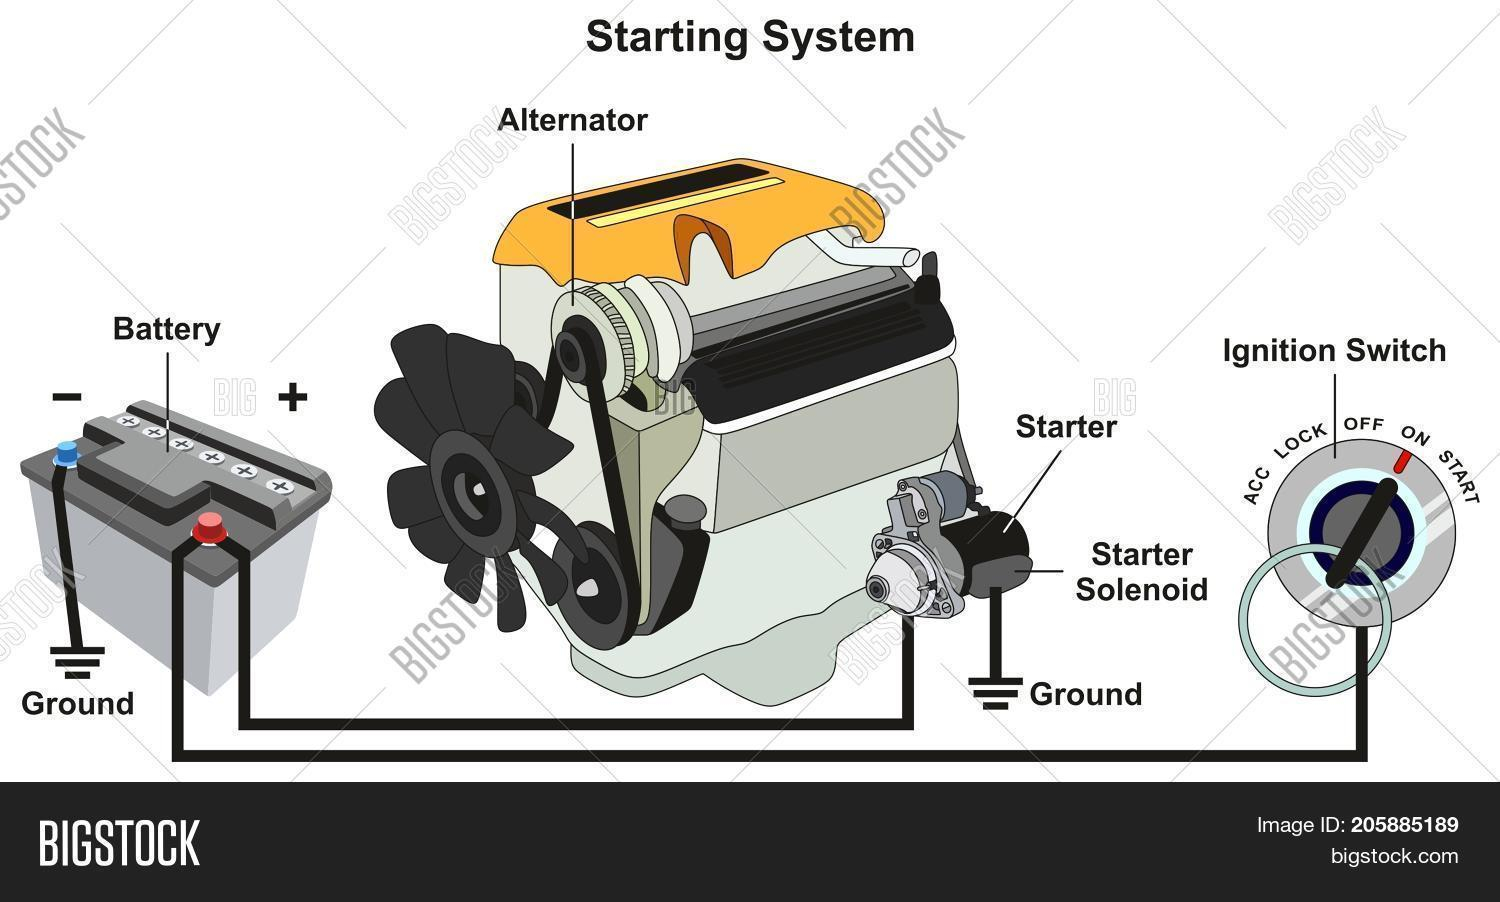 Car Battery System : Starting charging image photo free trial bigstock